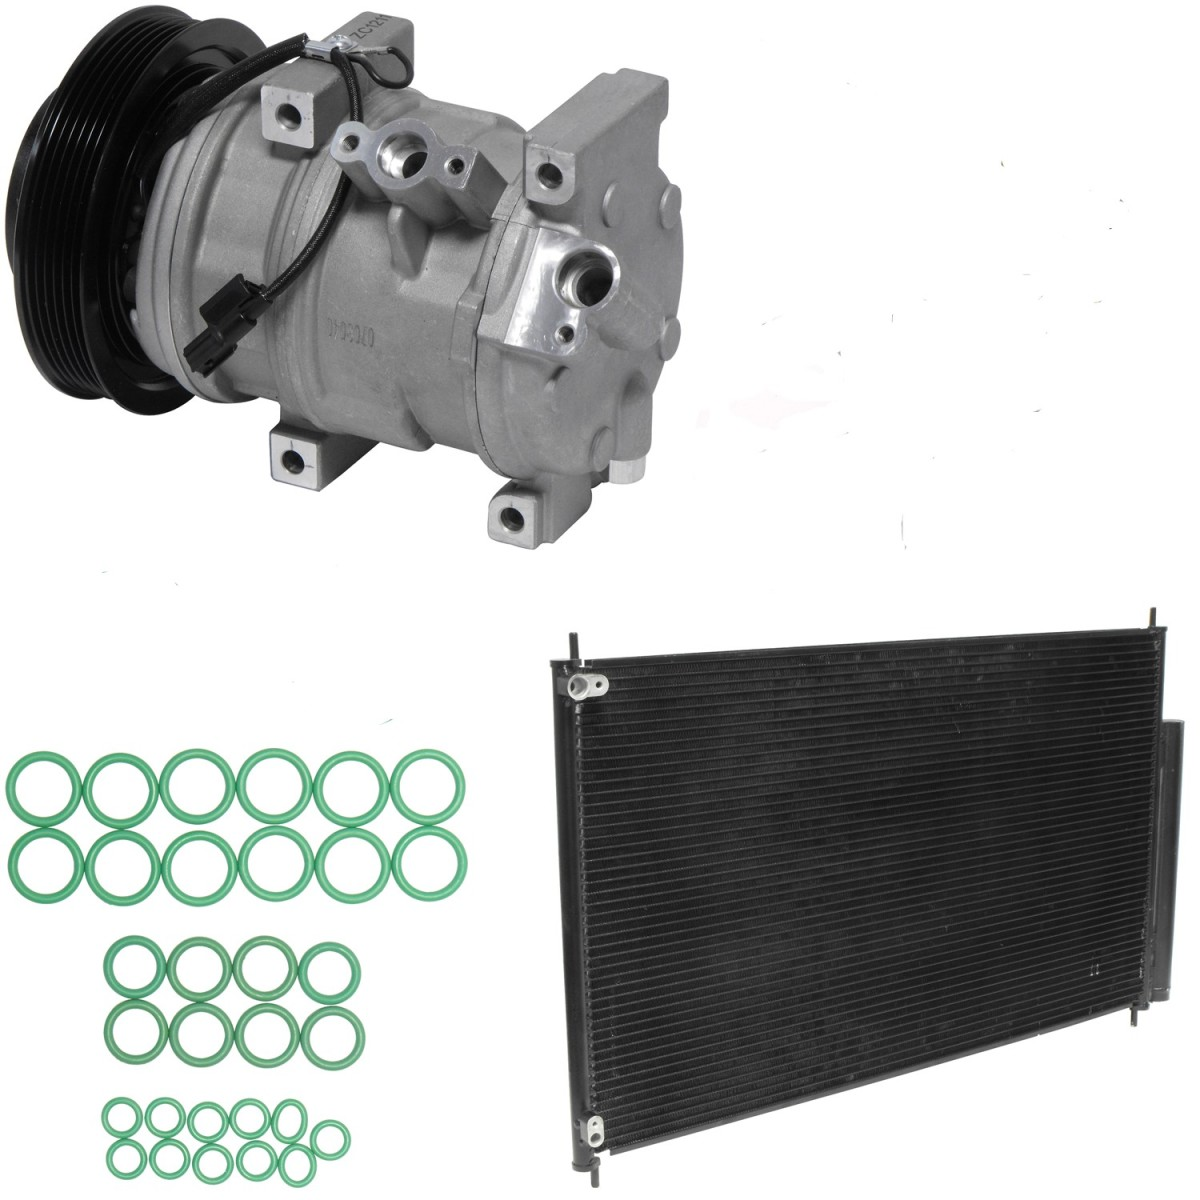 hight resolution of honda pilot ac service compressor and condenser replacement with video